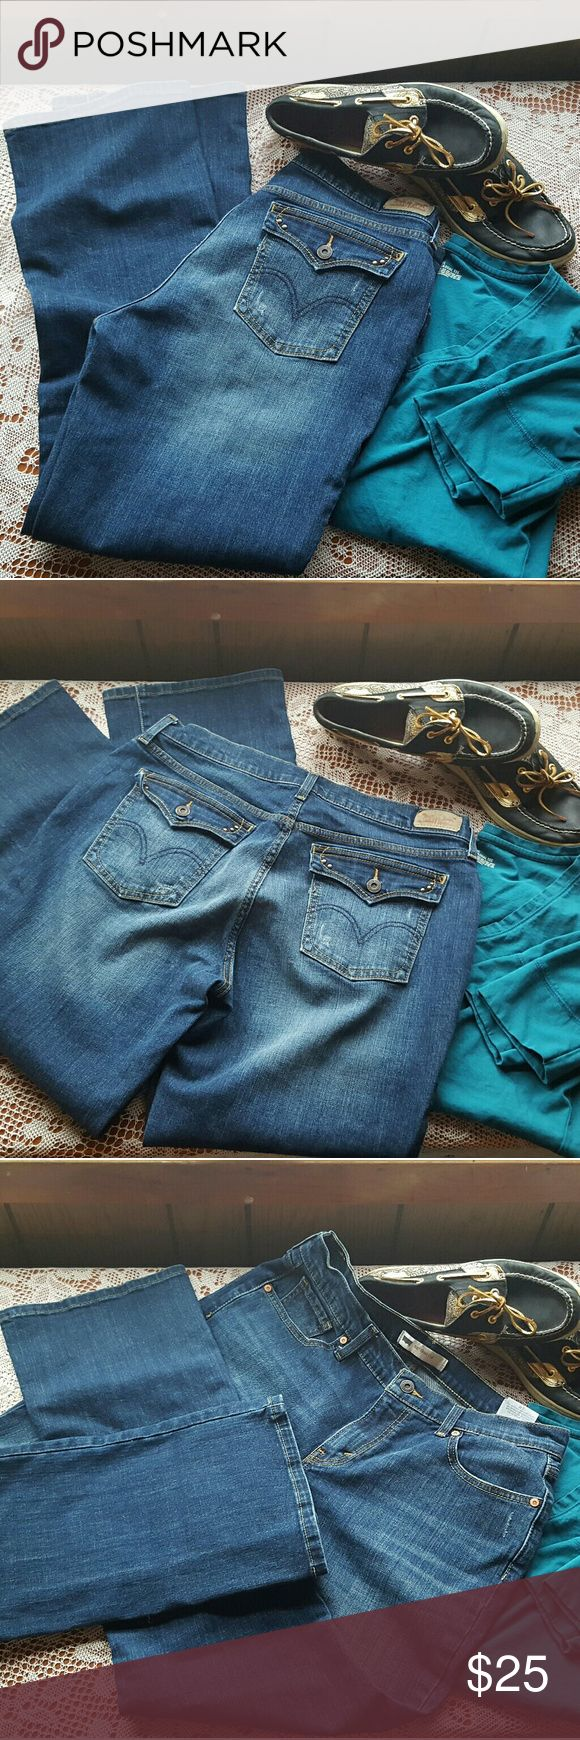 Levi's 515 womens bootcut jeans like new Levi's 515 women's bootcut jeans slightly distressed size 12M Levi's Jeans Boot Cut